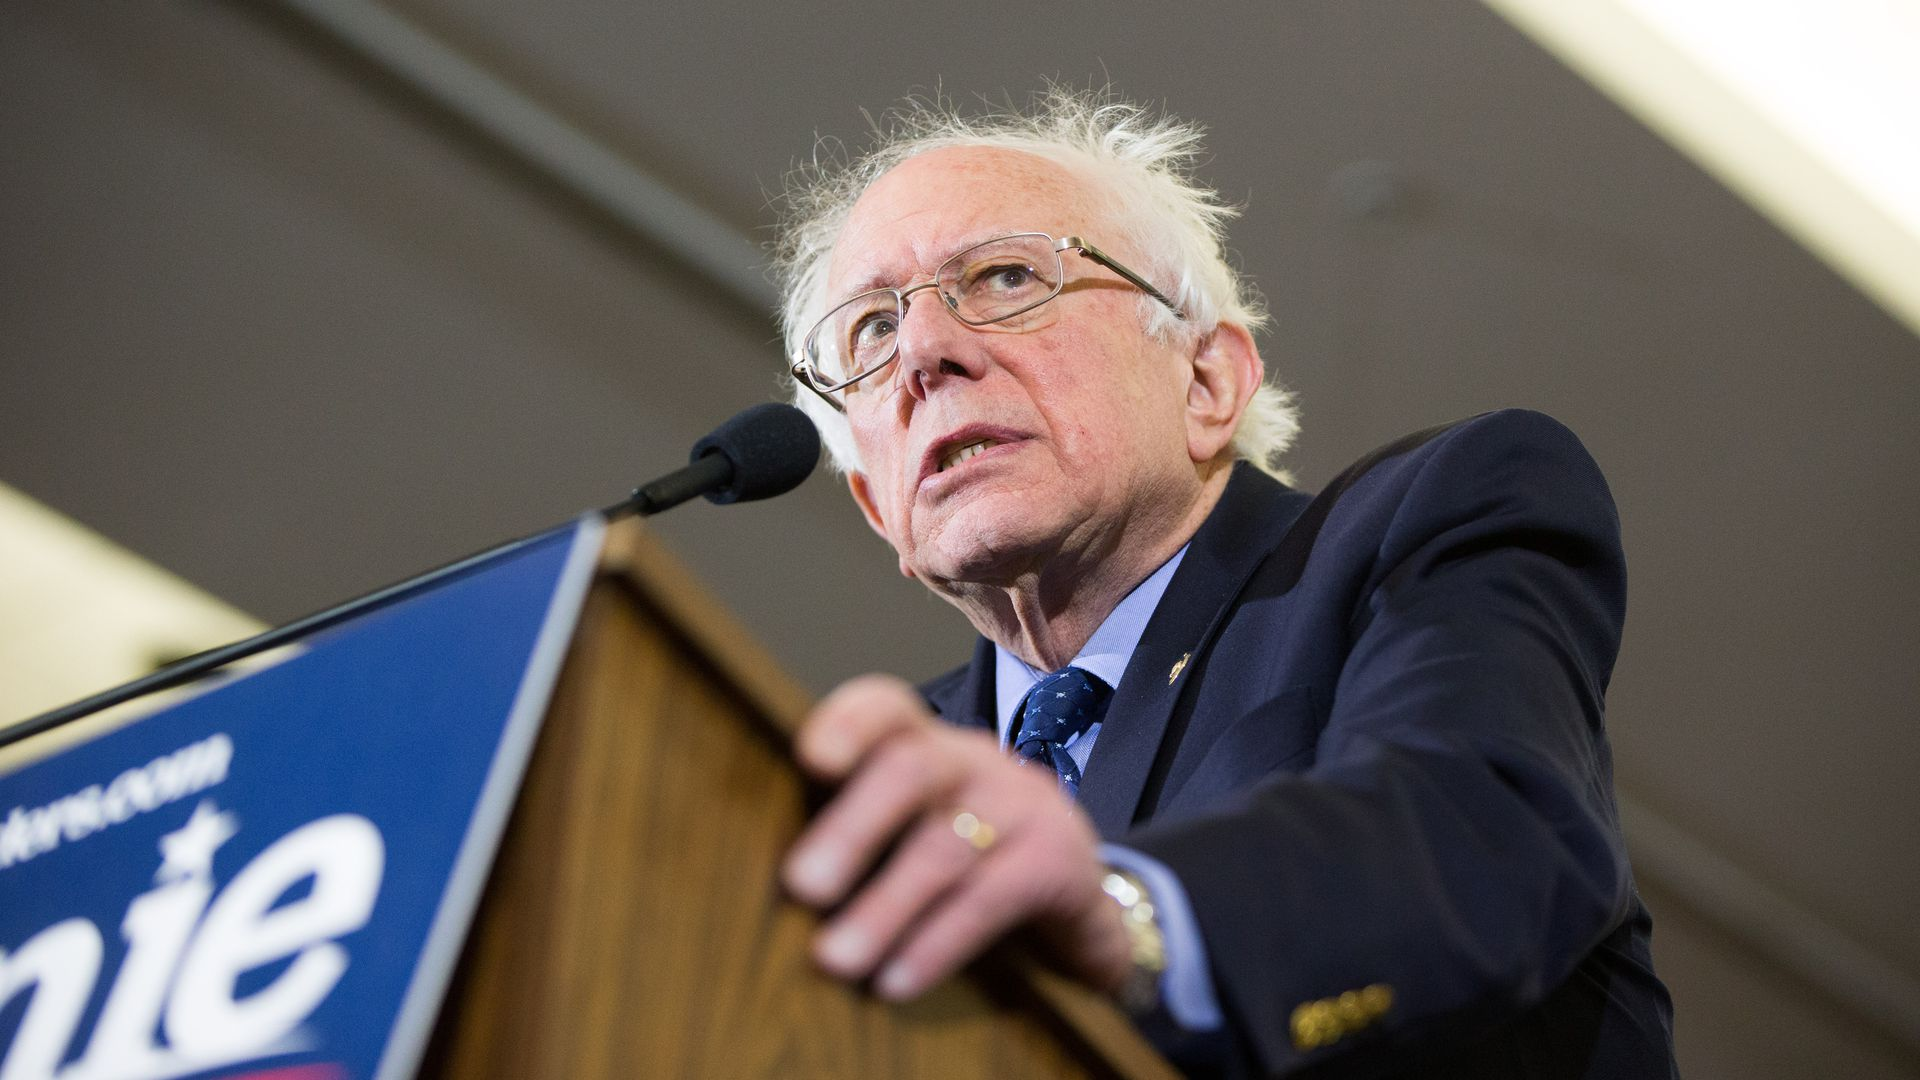 Democratic Presidential hopeful Bernie Sanders says the U.S. must take on the NRA.